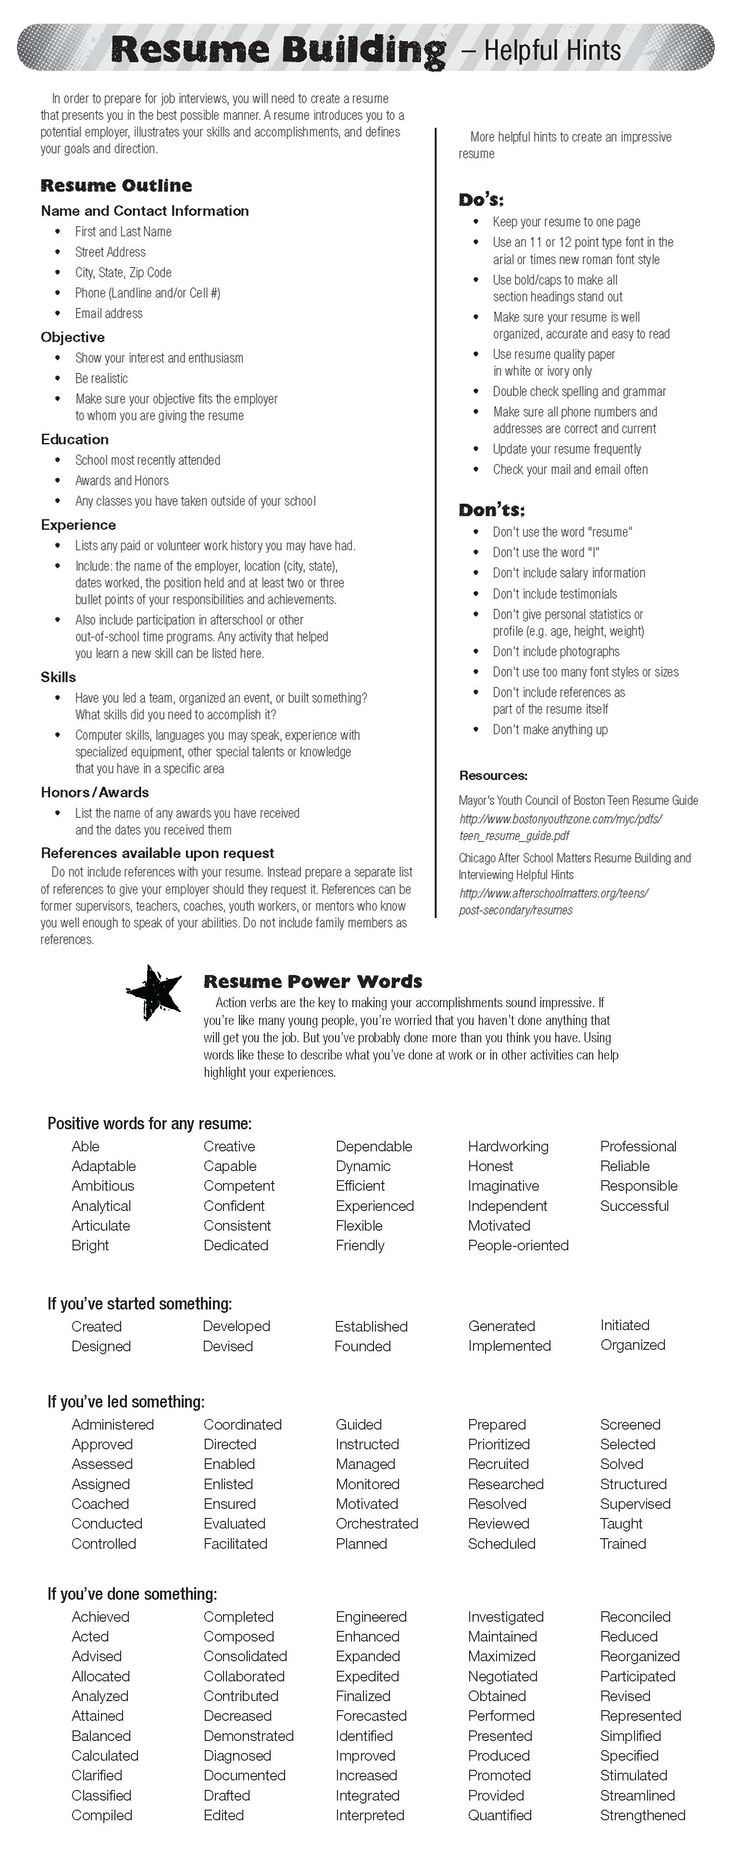 Opposenewapstandardsus  Picturesque  Ideas About Resume On Pinterest  Cv Format Resume Cv And  With Extraordinary  Ideas About Resume On Pinterest  Cv Format Resume Cv And Resume Templates With Astounding Best Resumes Examples Also Good Objective For A Resume In Addition Resume With Salary History And Key Words For Resumes As Well As Google Drive Resume Additionally Example Of A Job Resume From Pinterestcom With Opposenewapstandardsus  Extraordinary  Ideas About Resume On Pinterest  Cv Format Resume Cv And  With Astounding  Ideas About Resume On Pinterest  Cv Format Resume Cv And Resume Templates And Picturesque Best Resumes Examples Also Good Objective For A Resume In Addition Resume With Salary History From Pinterestcom